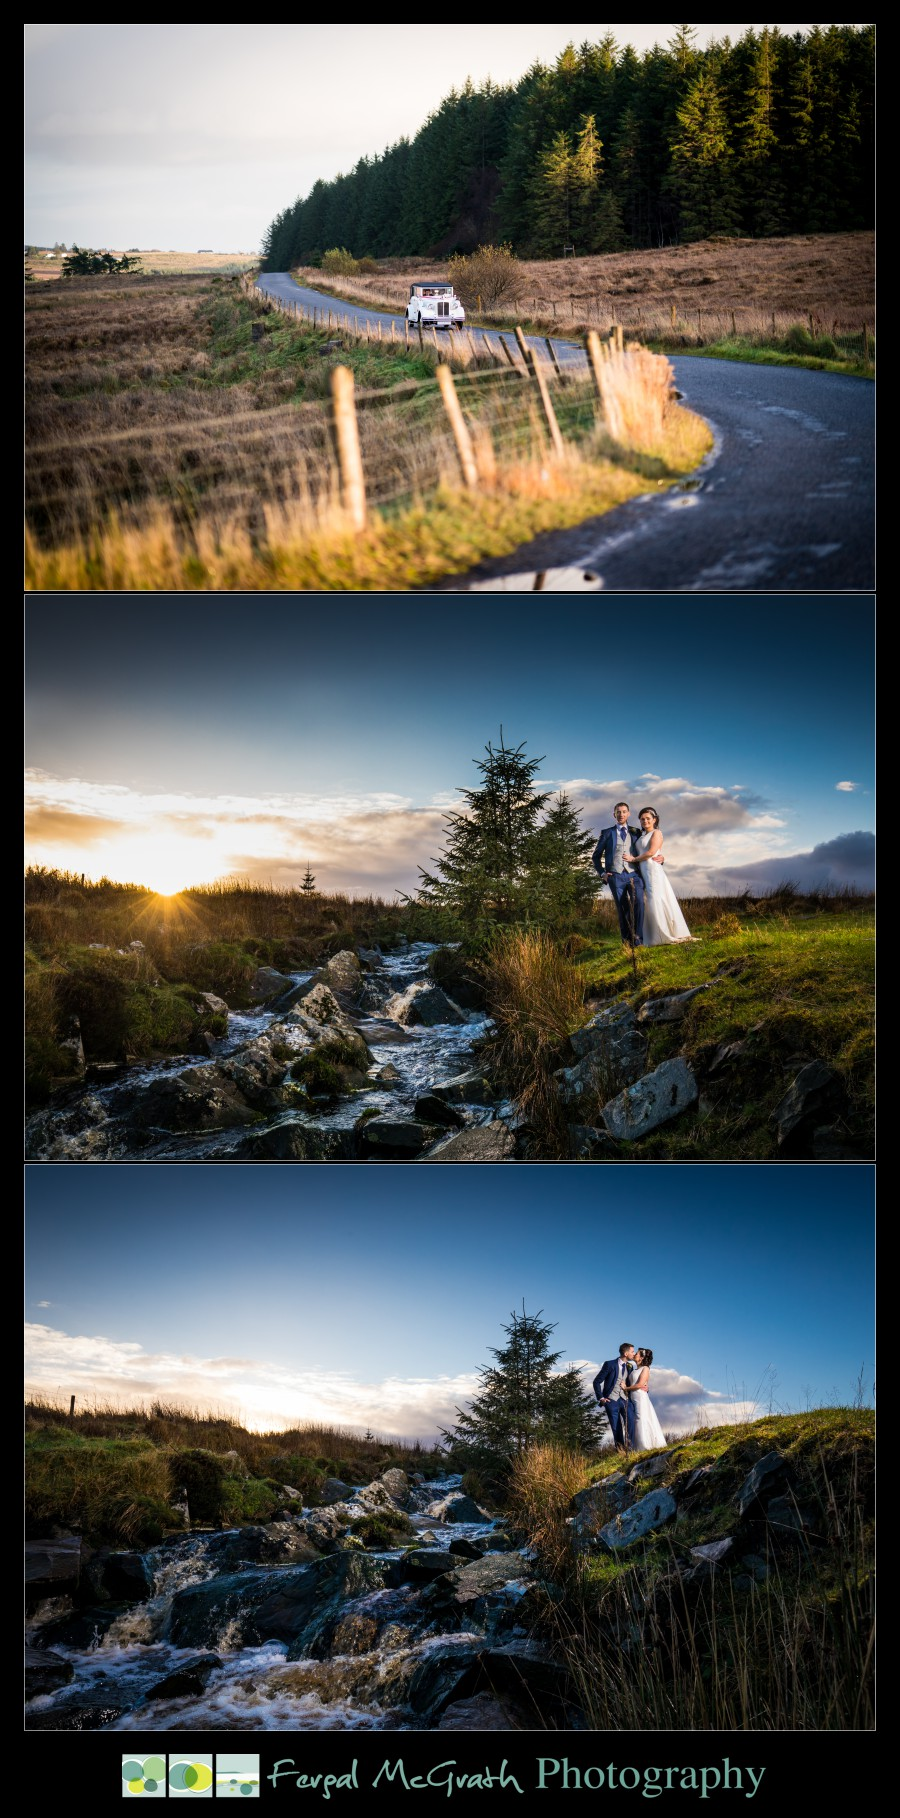 Silver Tassie Hotel Letterkenny Winter Wedding bride and groom beside stunning waterfall at sunset